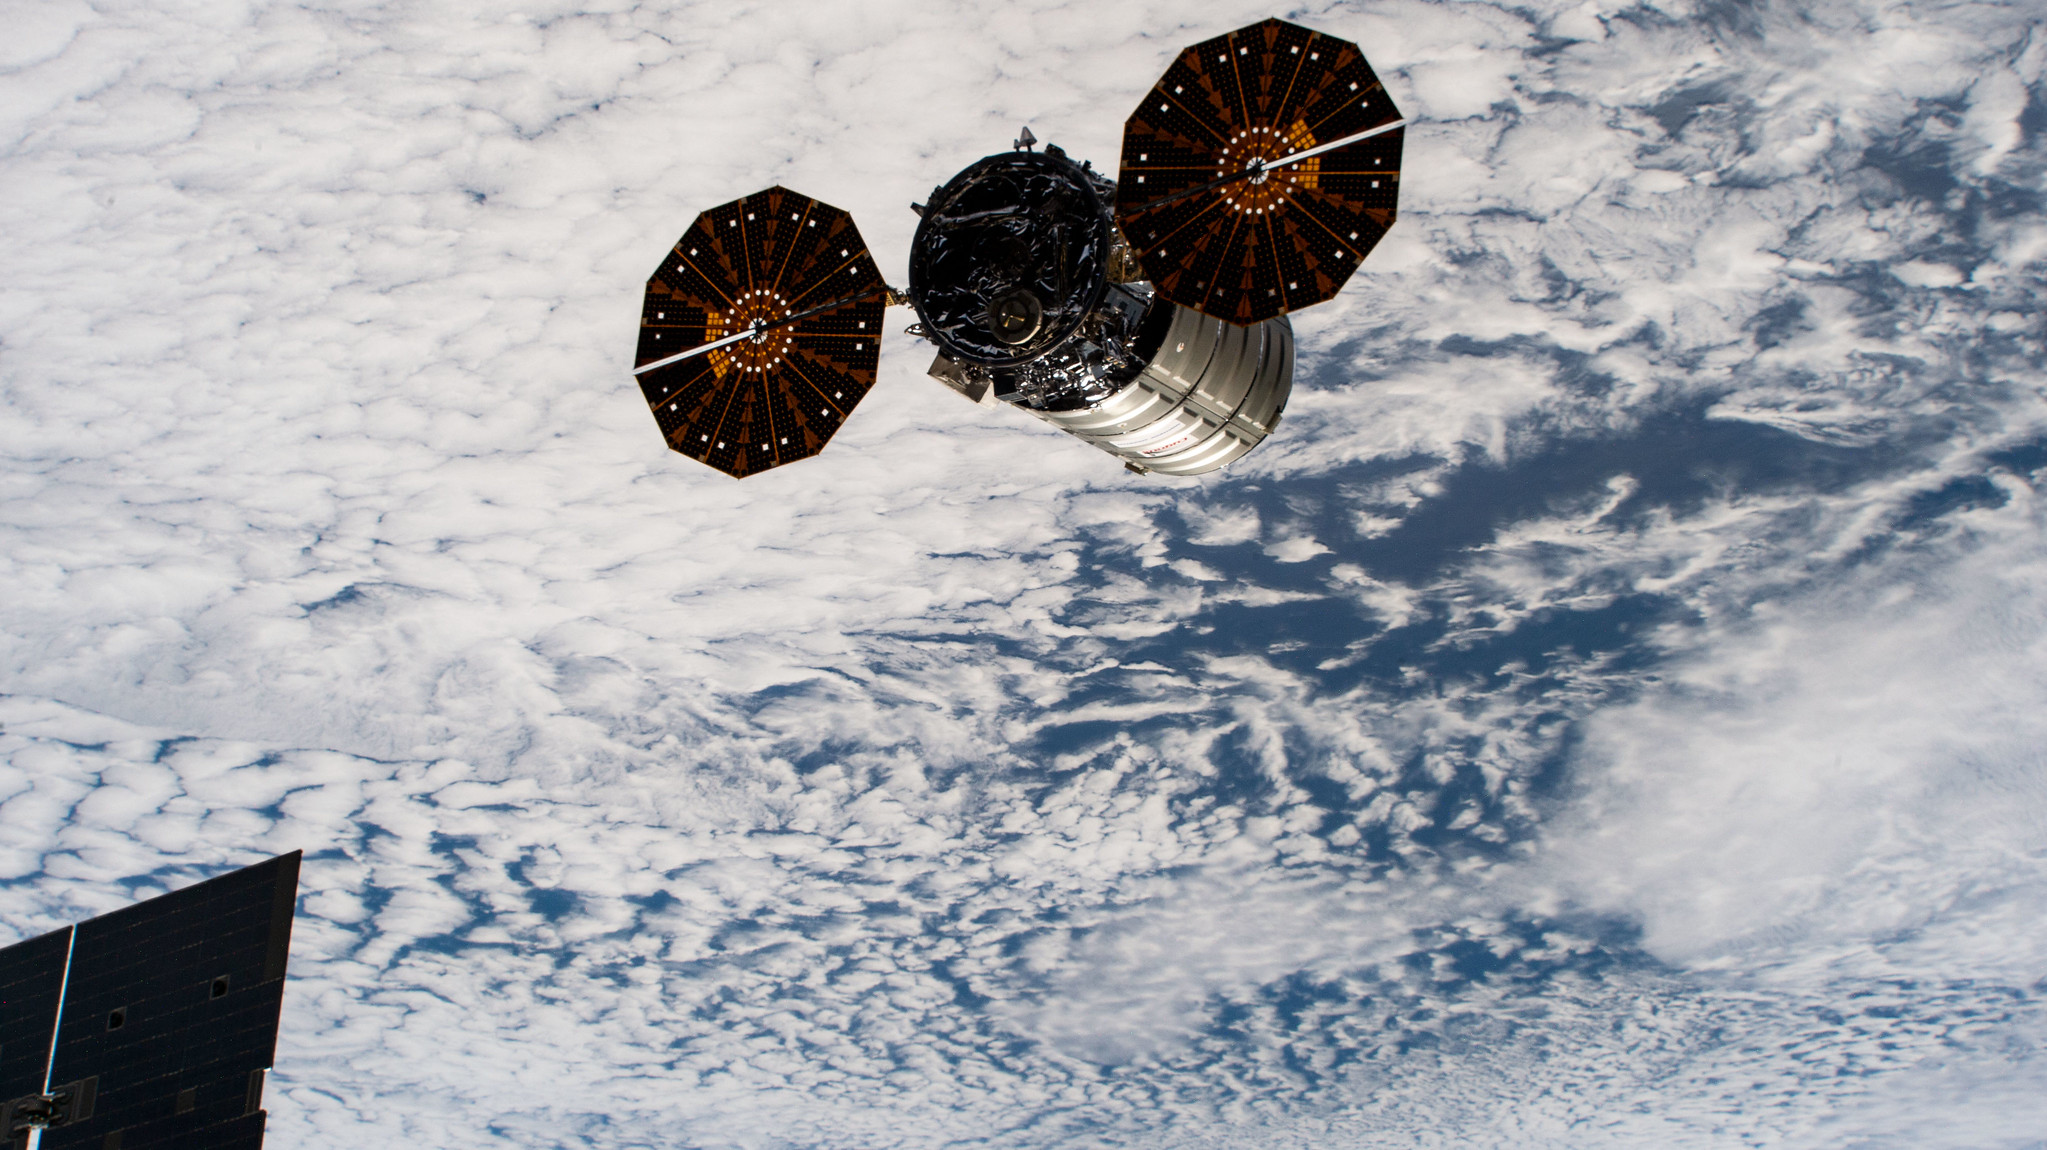 The NG-11 Cygnus departs the ISS. Credit: NASA